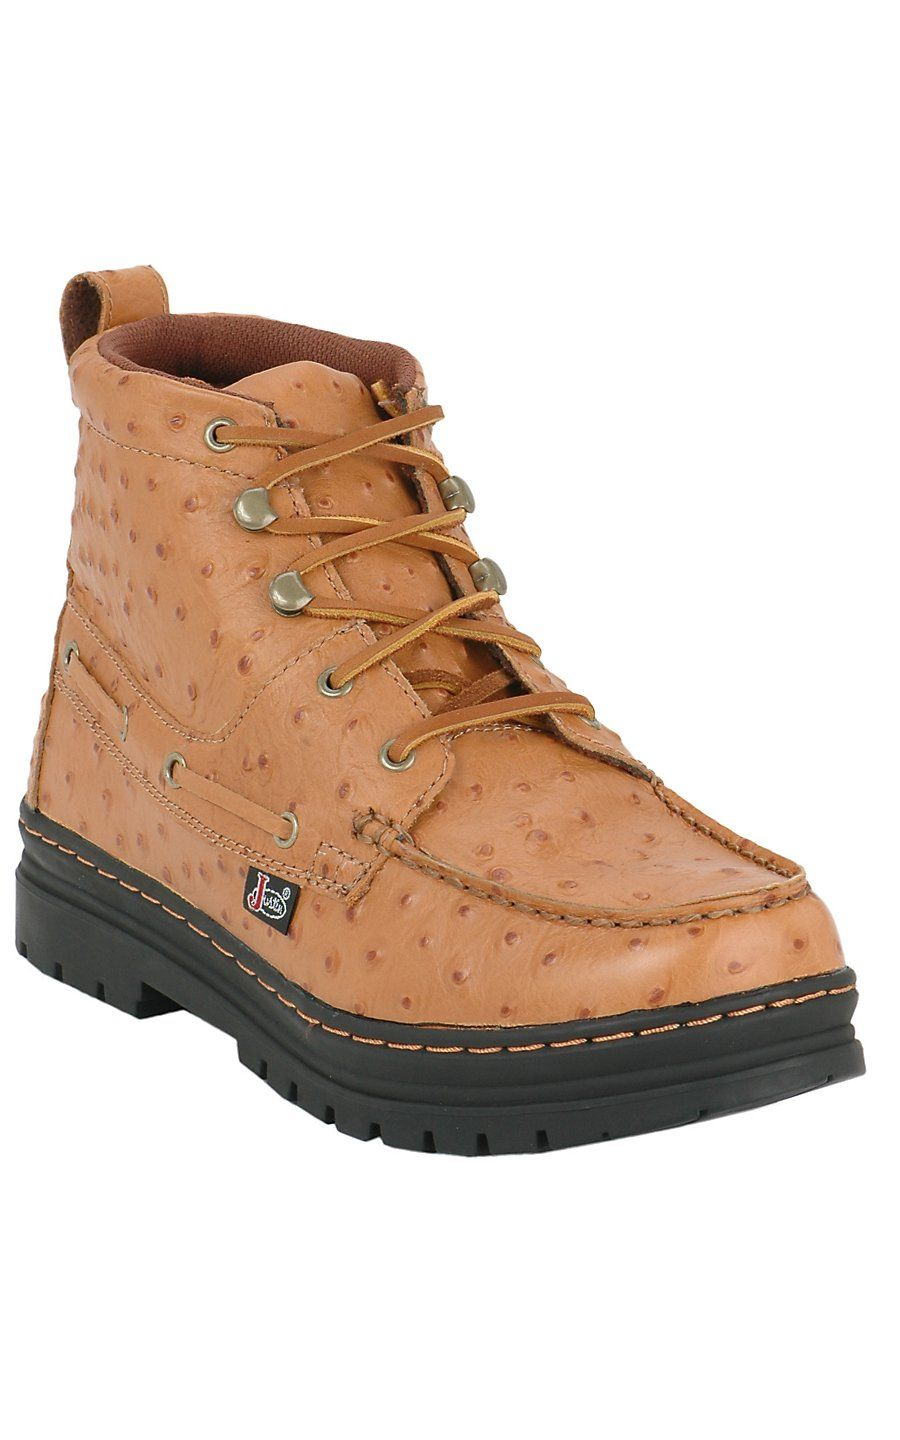 Boots, Mens casual shoes, Chukka boots